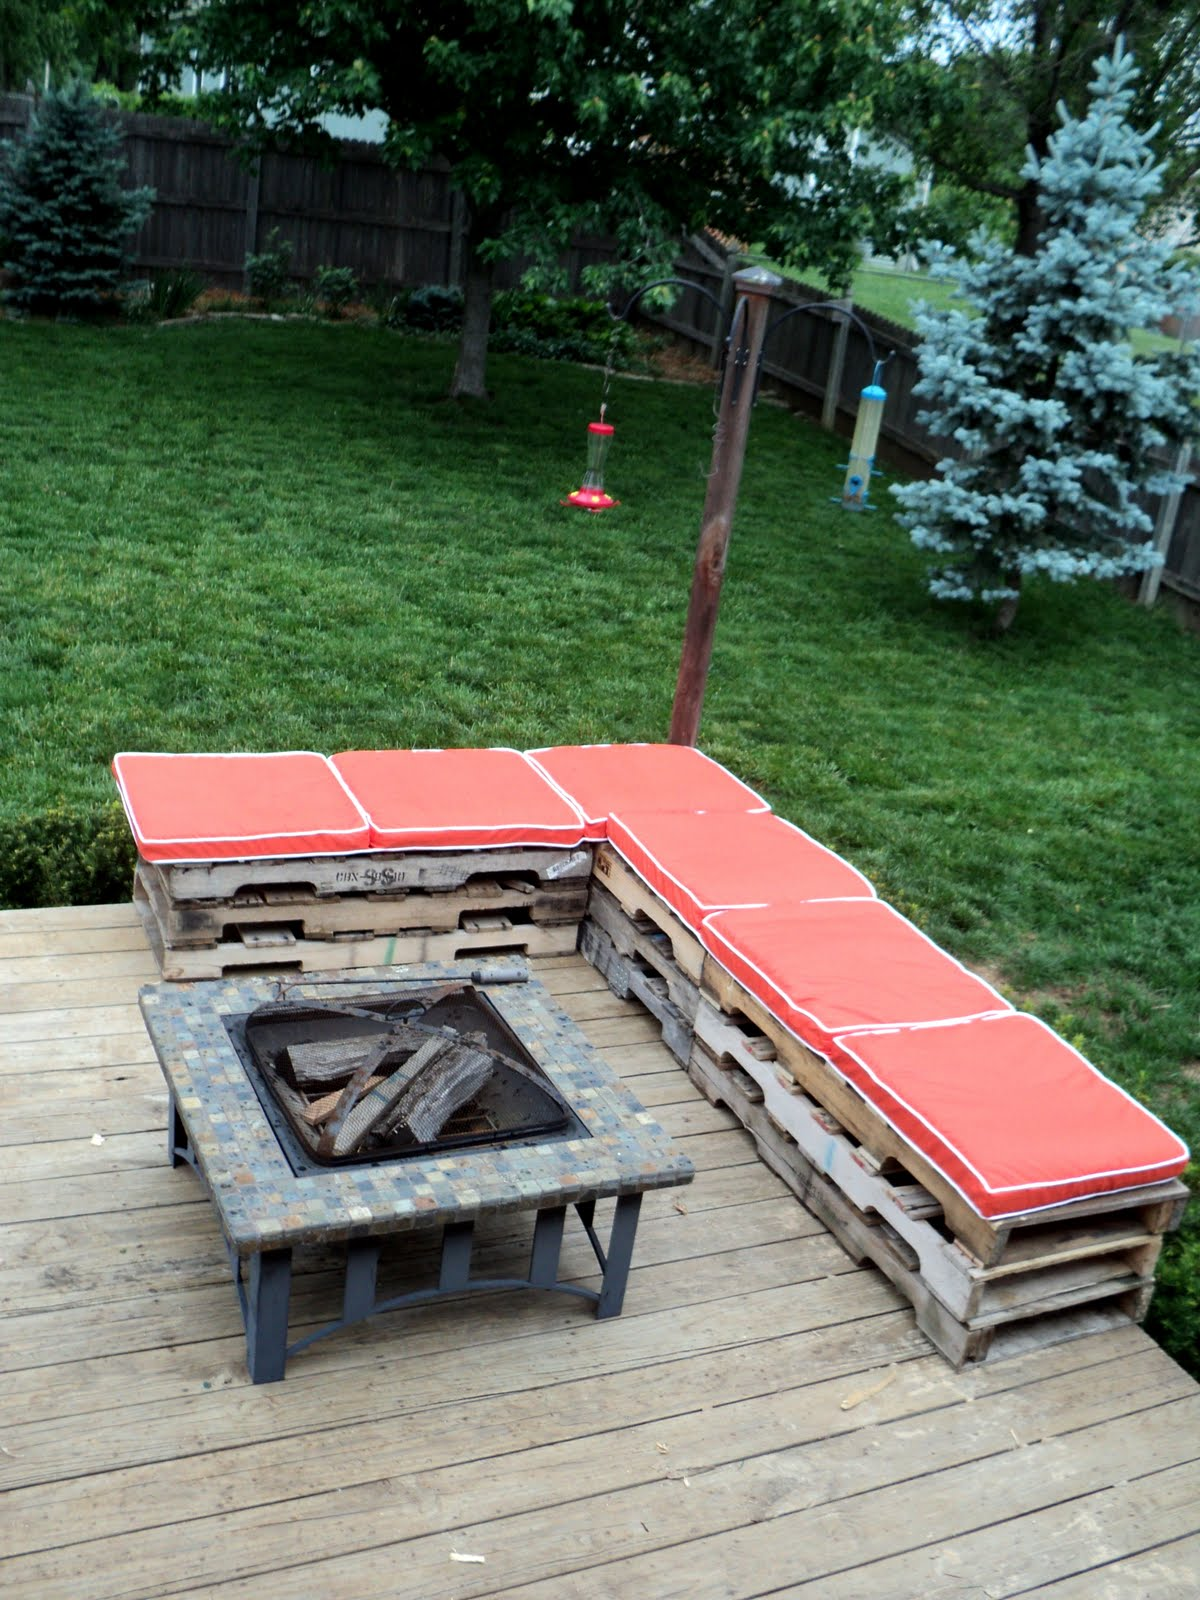 15 of the best backyard diy projects the craftiest couple for Pallet ideas